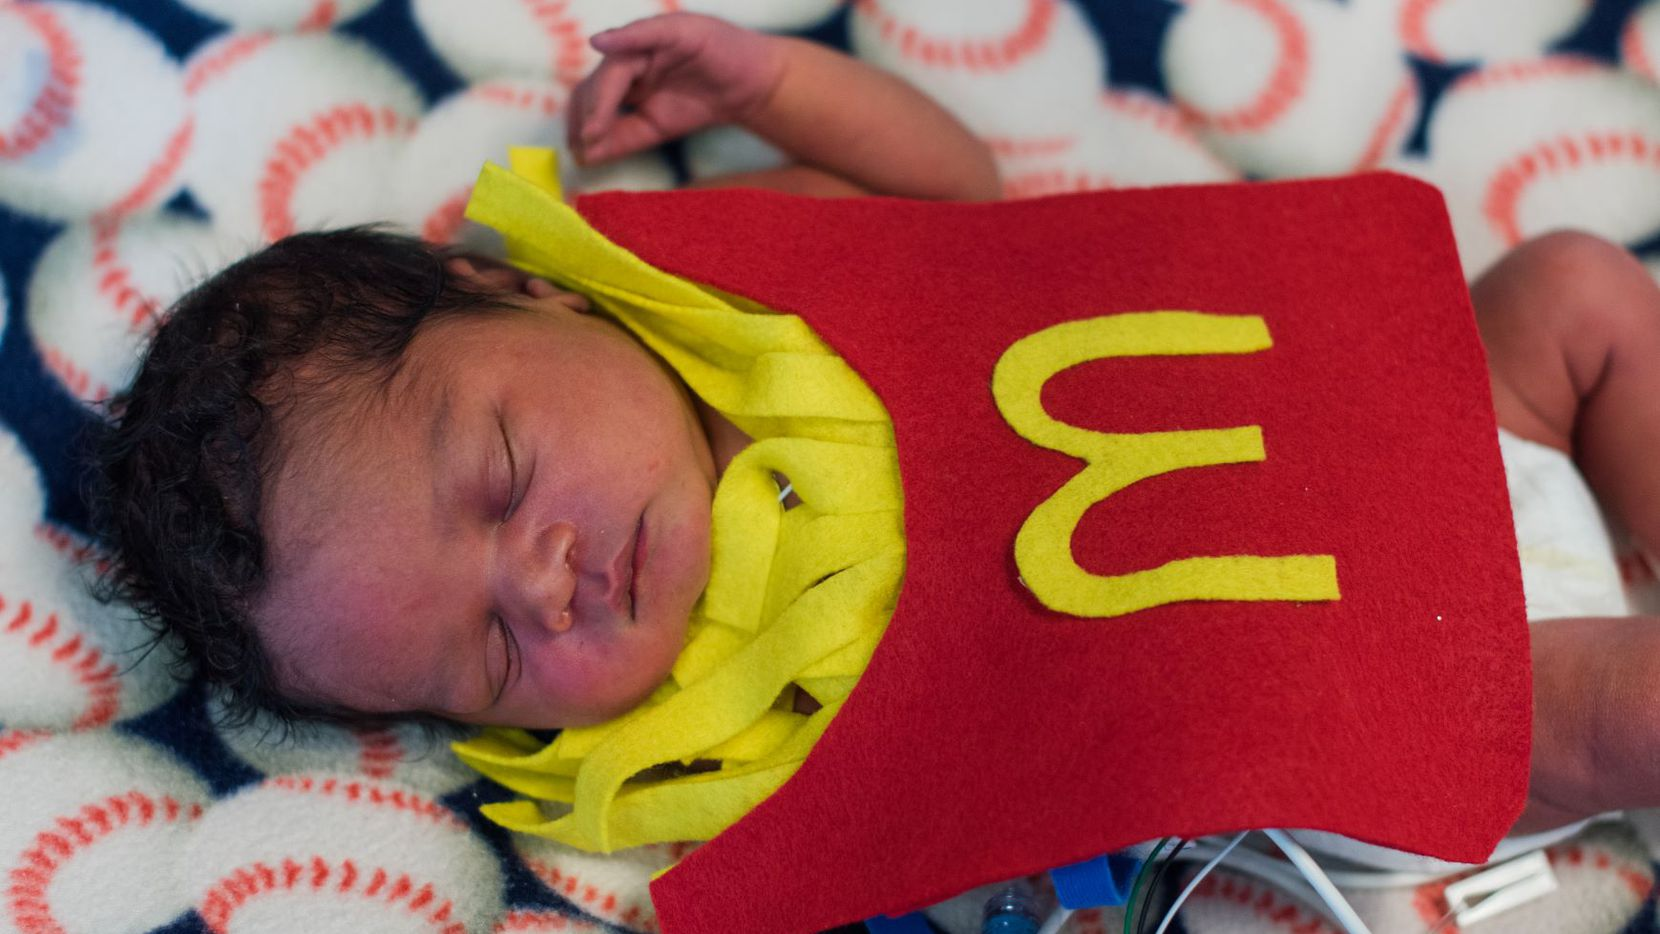 A baby in the NICU unit at Methodist Dallas in costume,  Nurses made felt costumes for the tiniest patients and one of the nurses, who is a professional photographer, took pictures so families would never forget their kiddo's first Halloween.